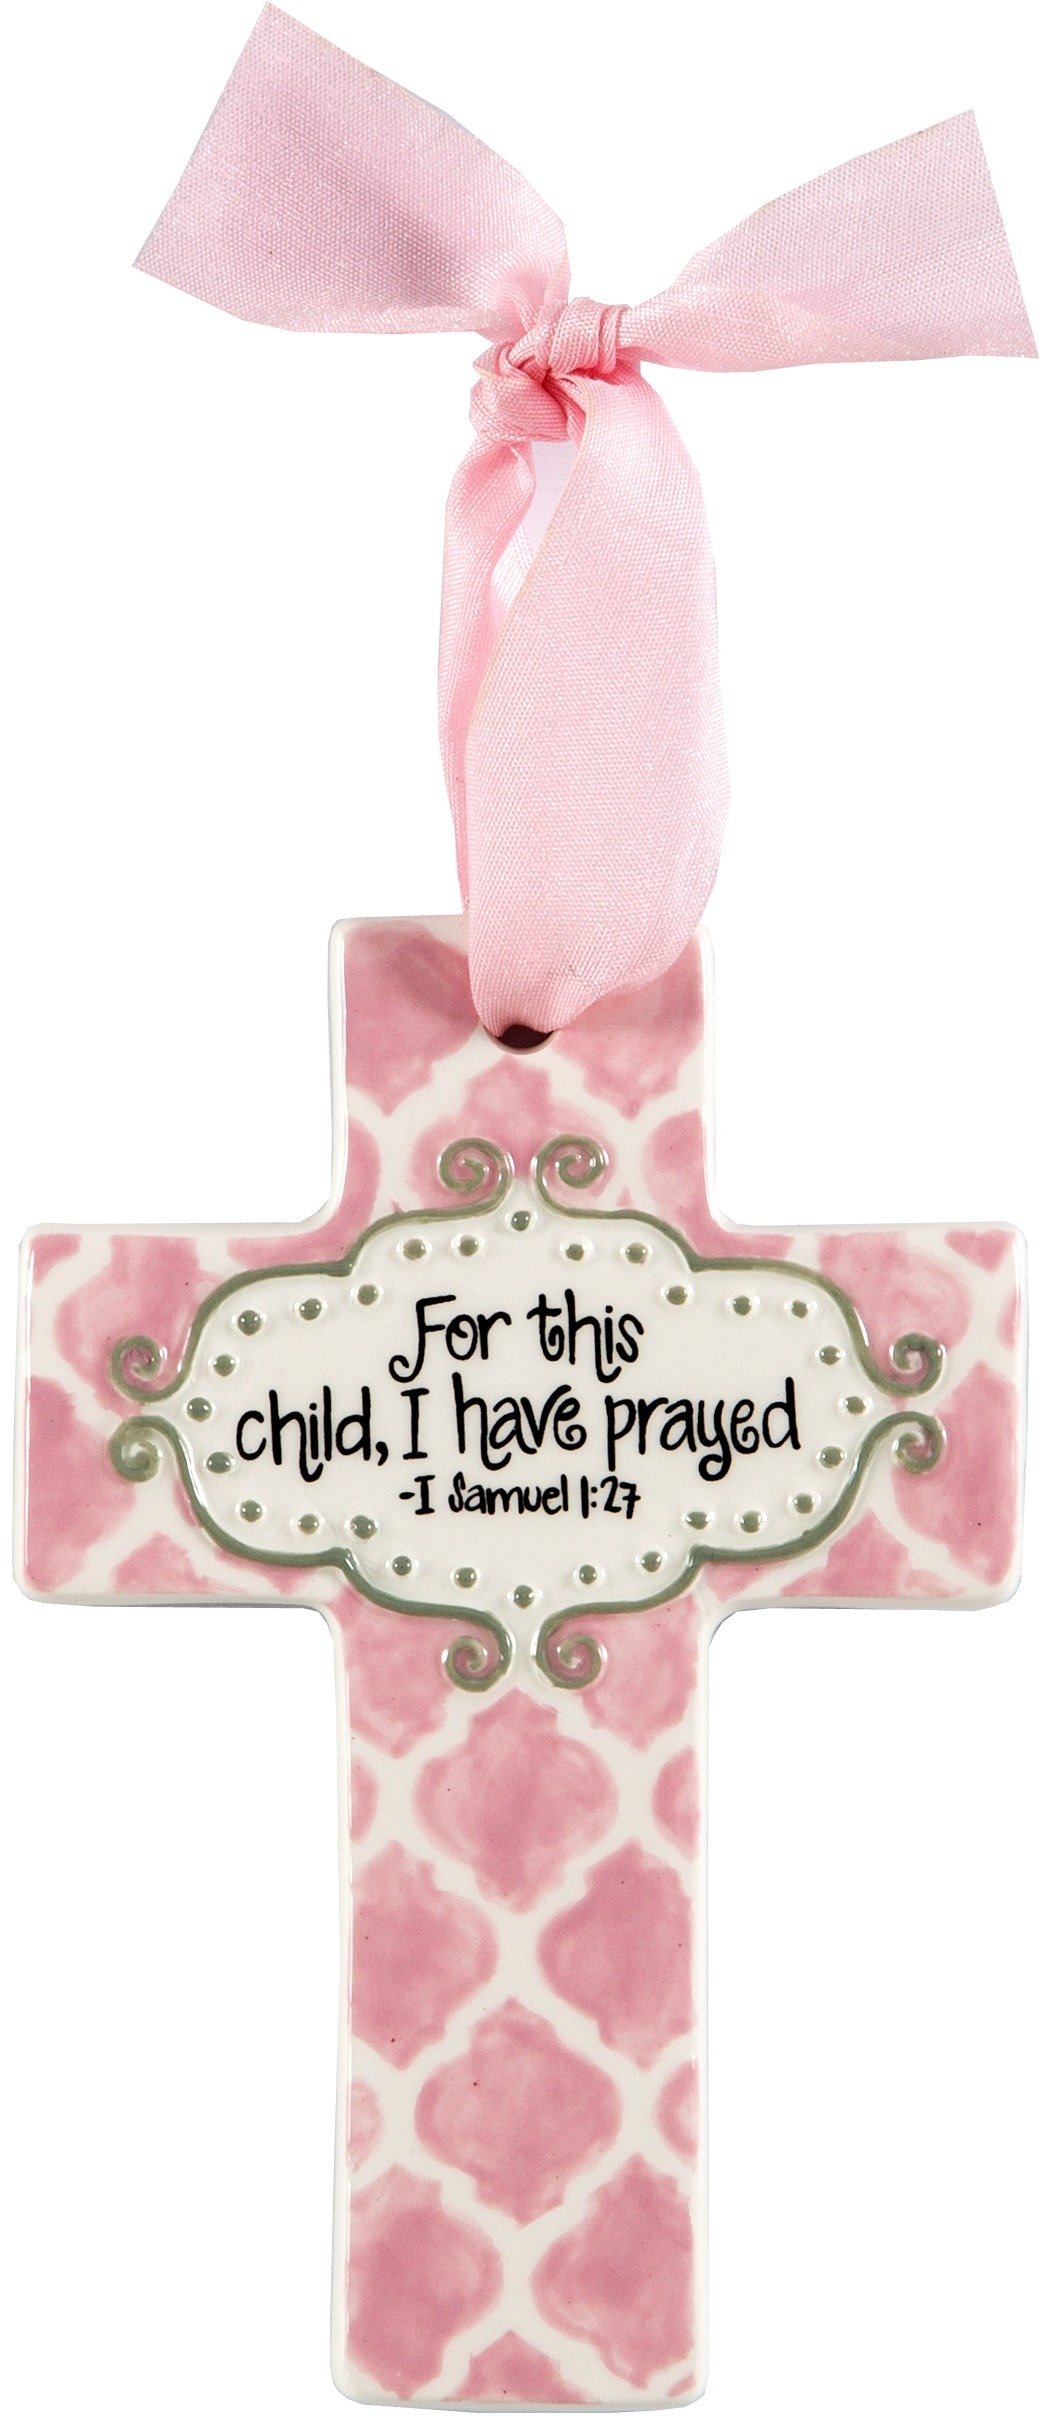 Cross Ornament: For this child, I have prayed - I Samuel 1:27 (Baby Girl Pink)